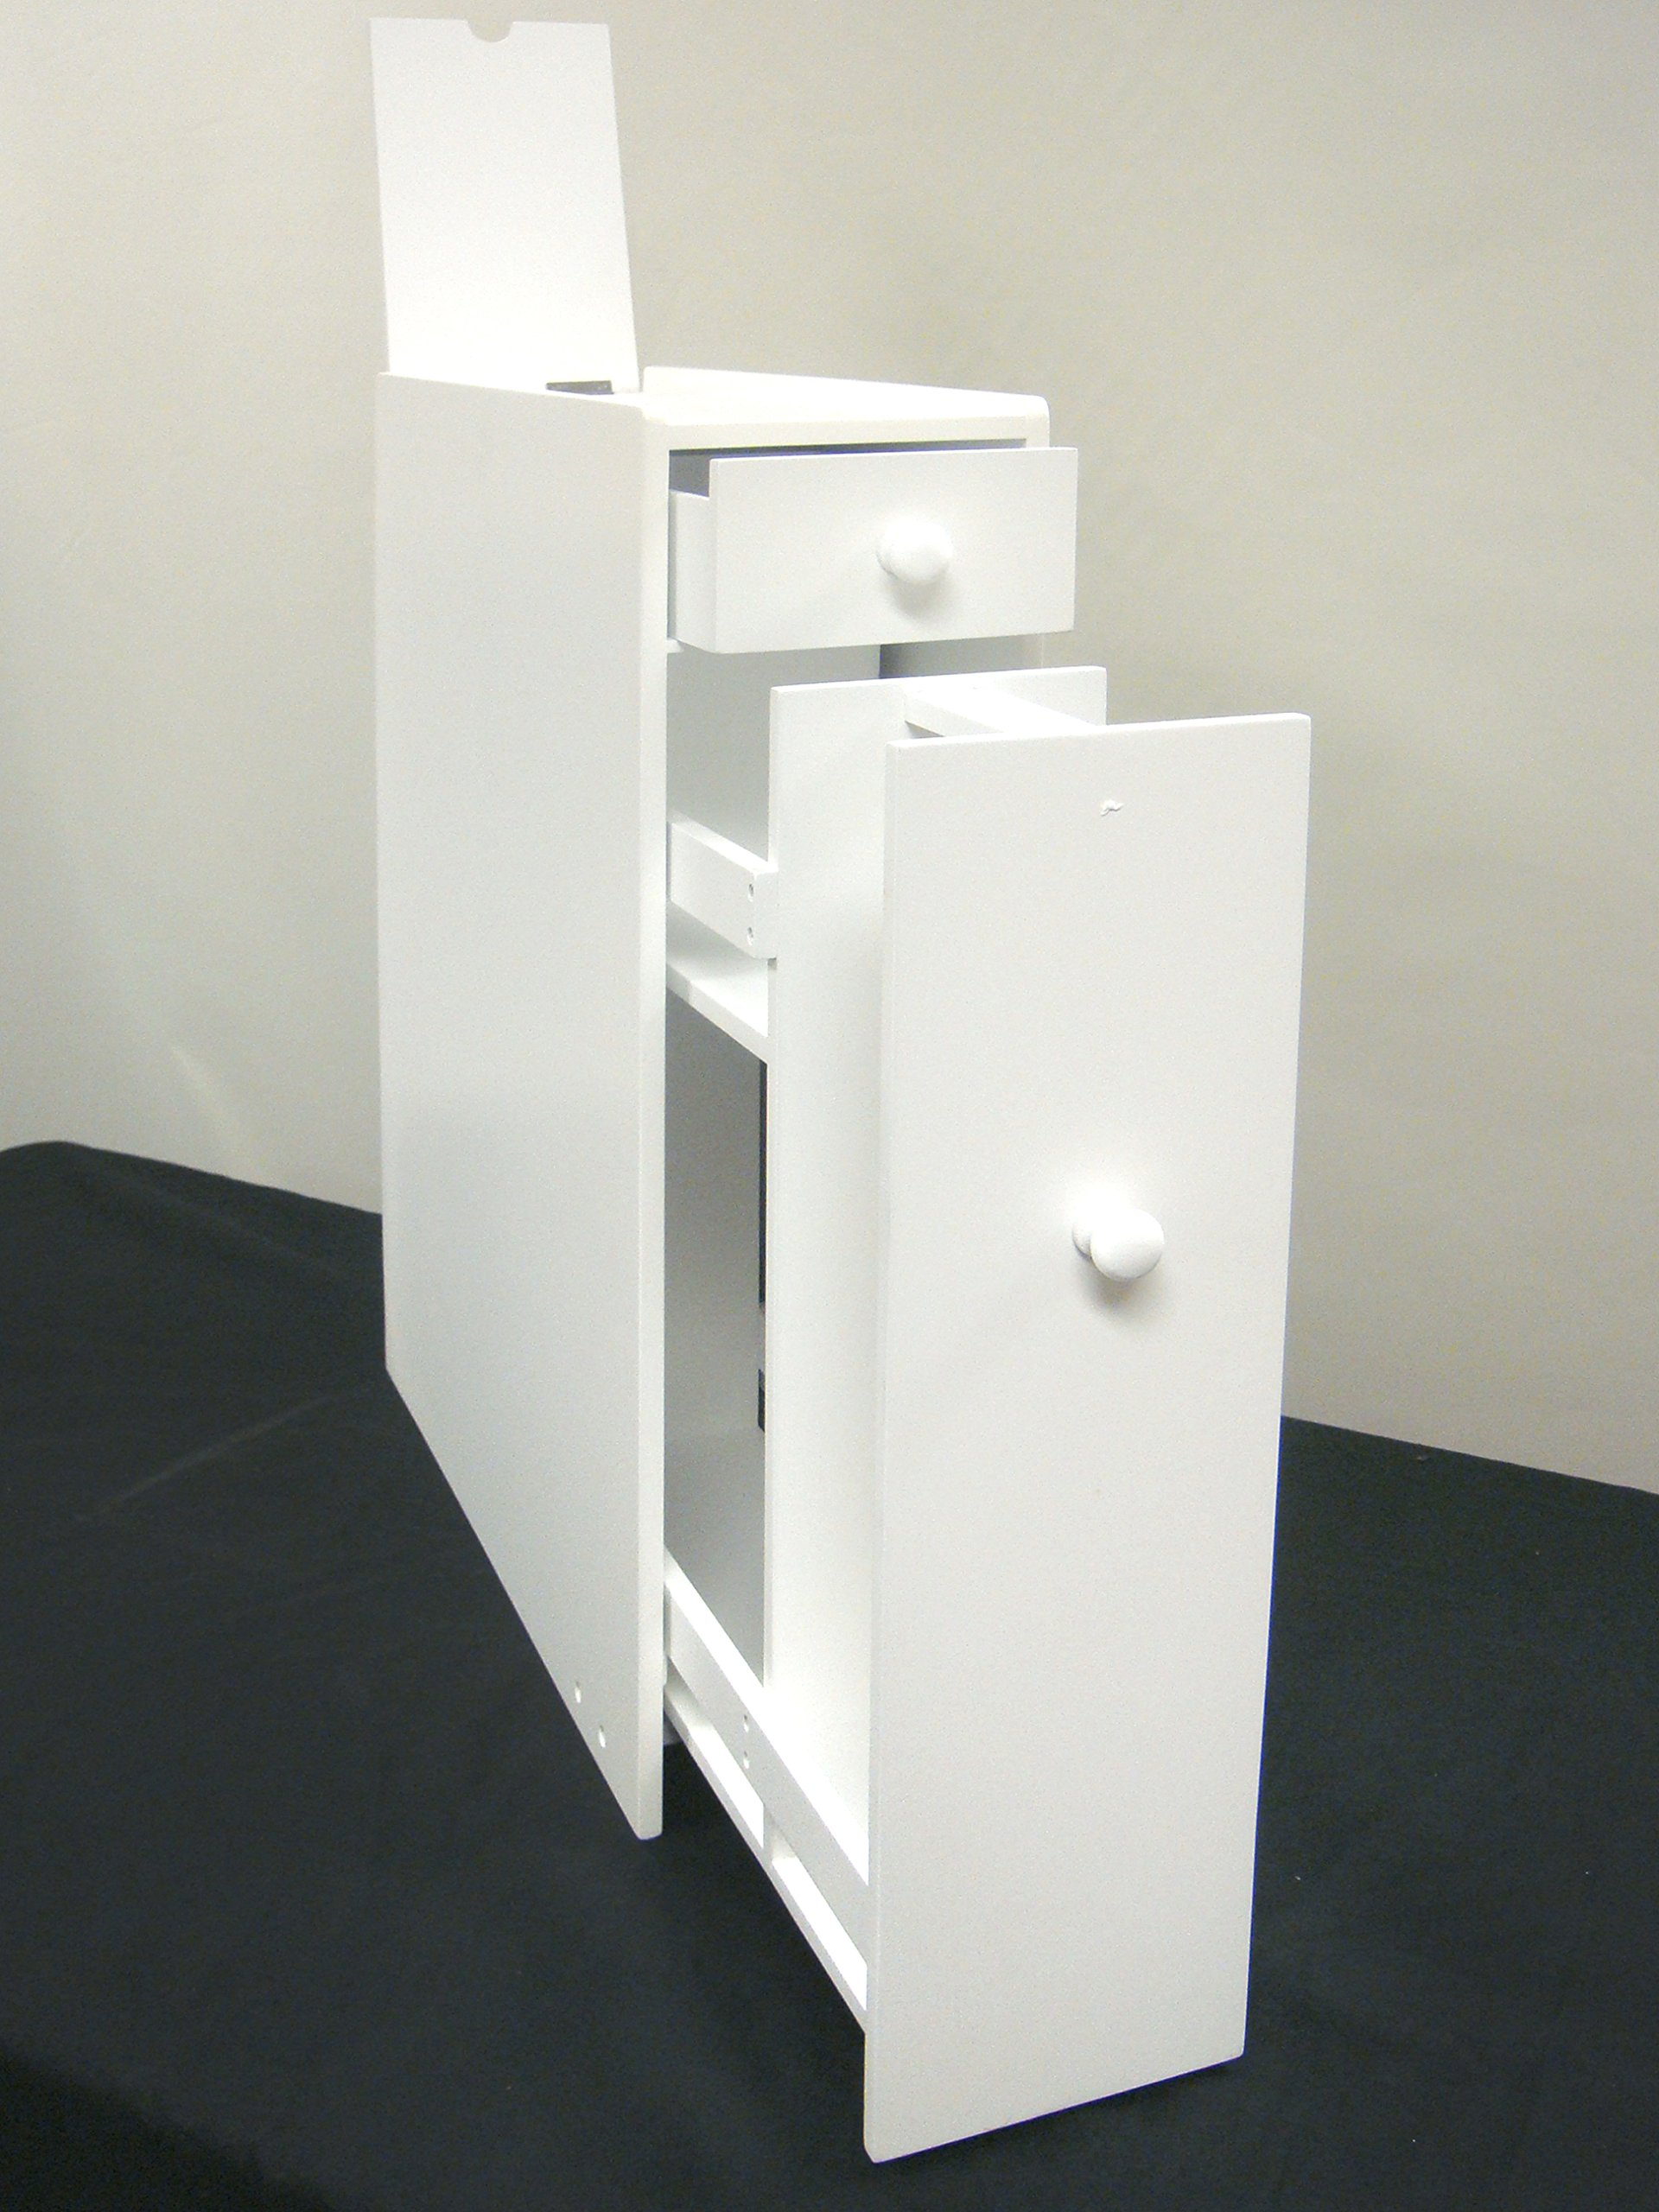 Proman Products Bathroom Floor Cabinet Wood in Pure White by Proman Products (Image #6)